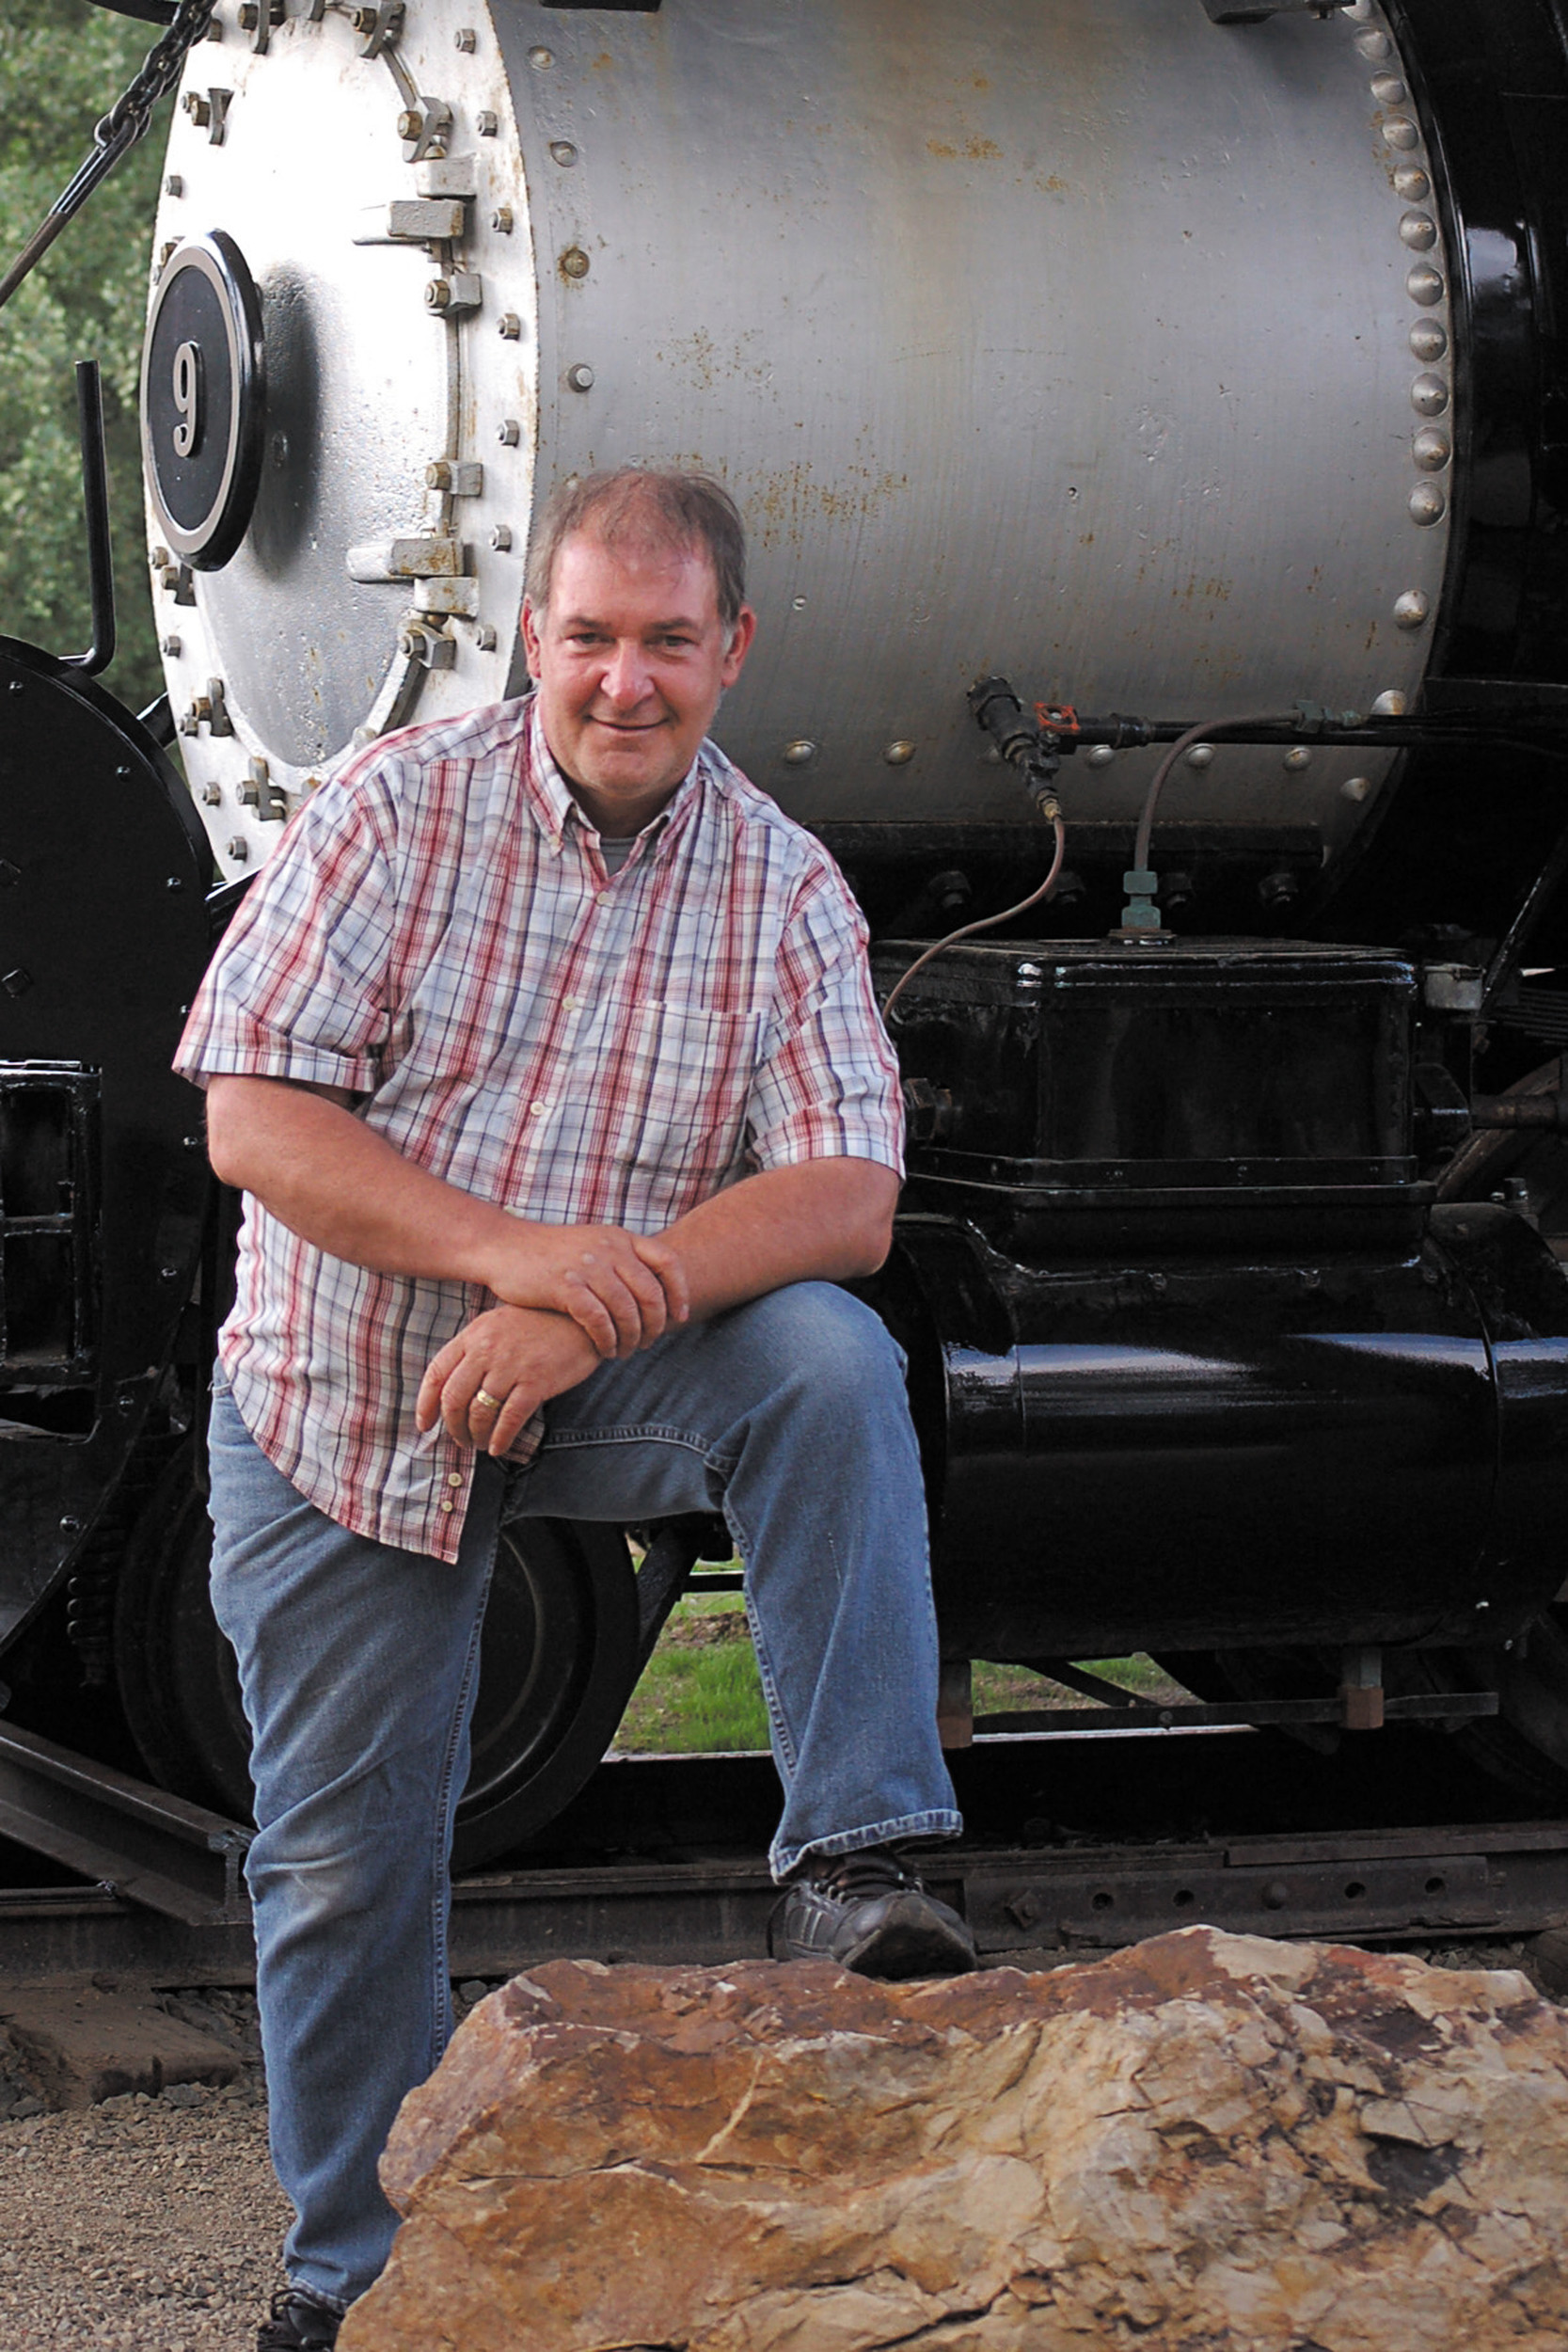 Ken Smith of Castle Rock will show recent railroad photographs through Sept. 30 at QRstorytelling Gallery in Castle Rock.